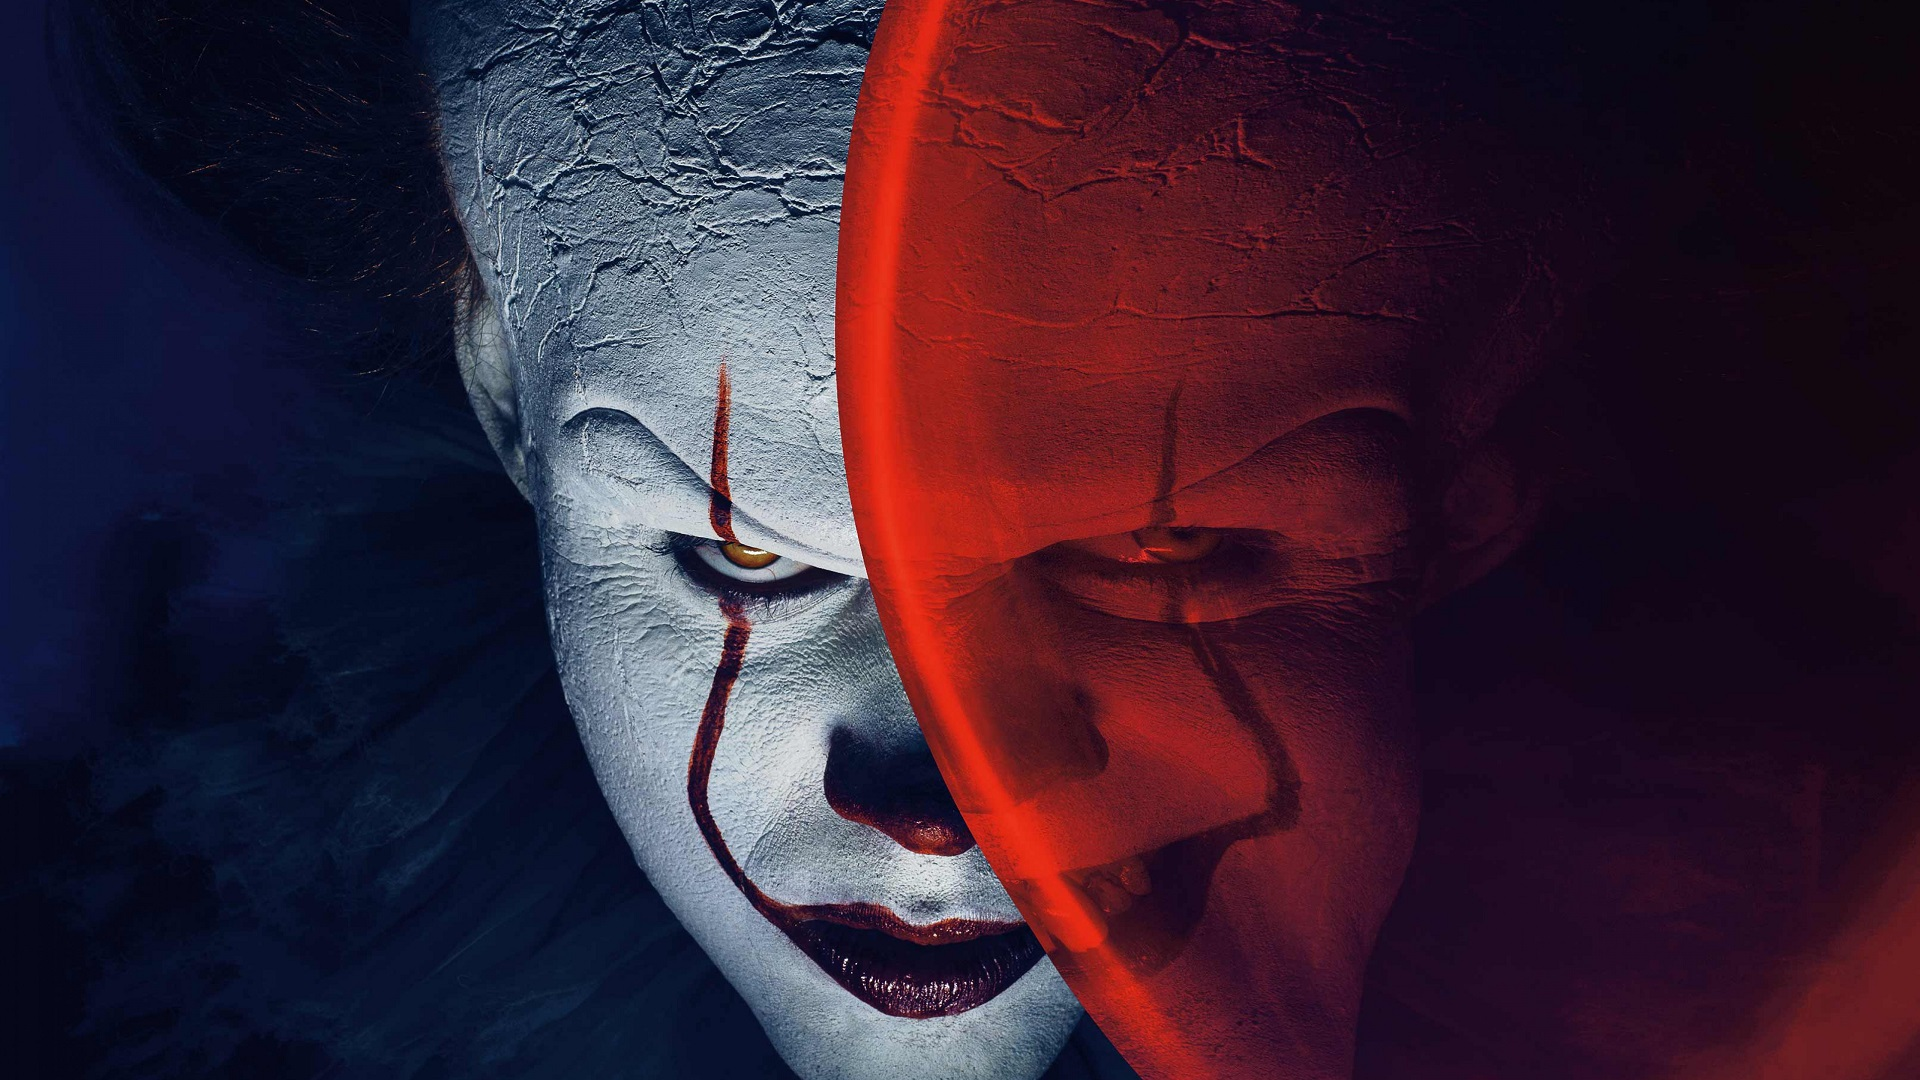 9. It: Chapter Two